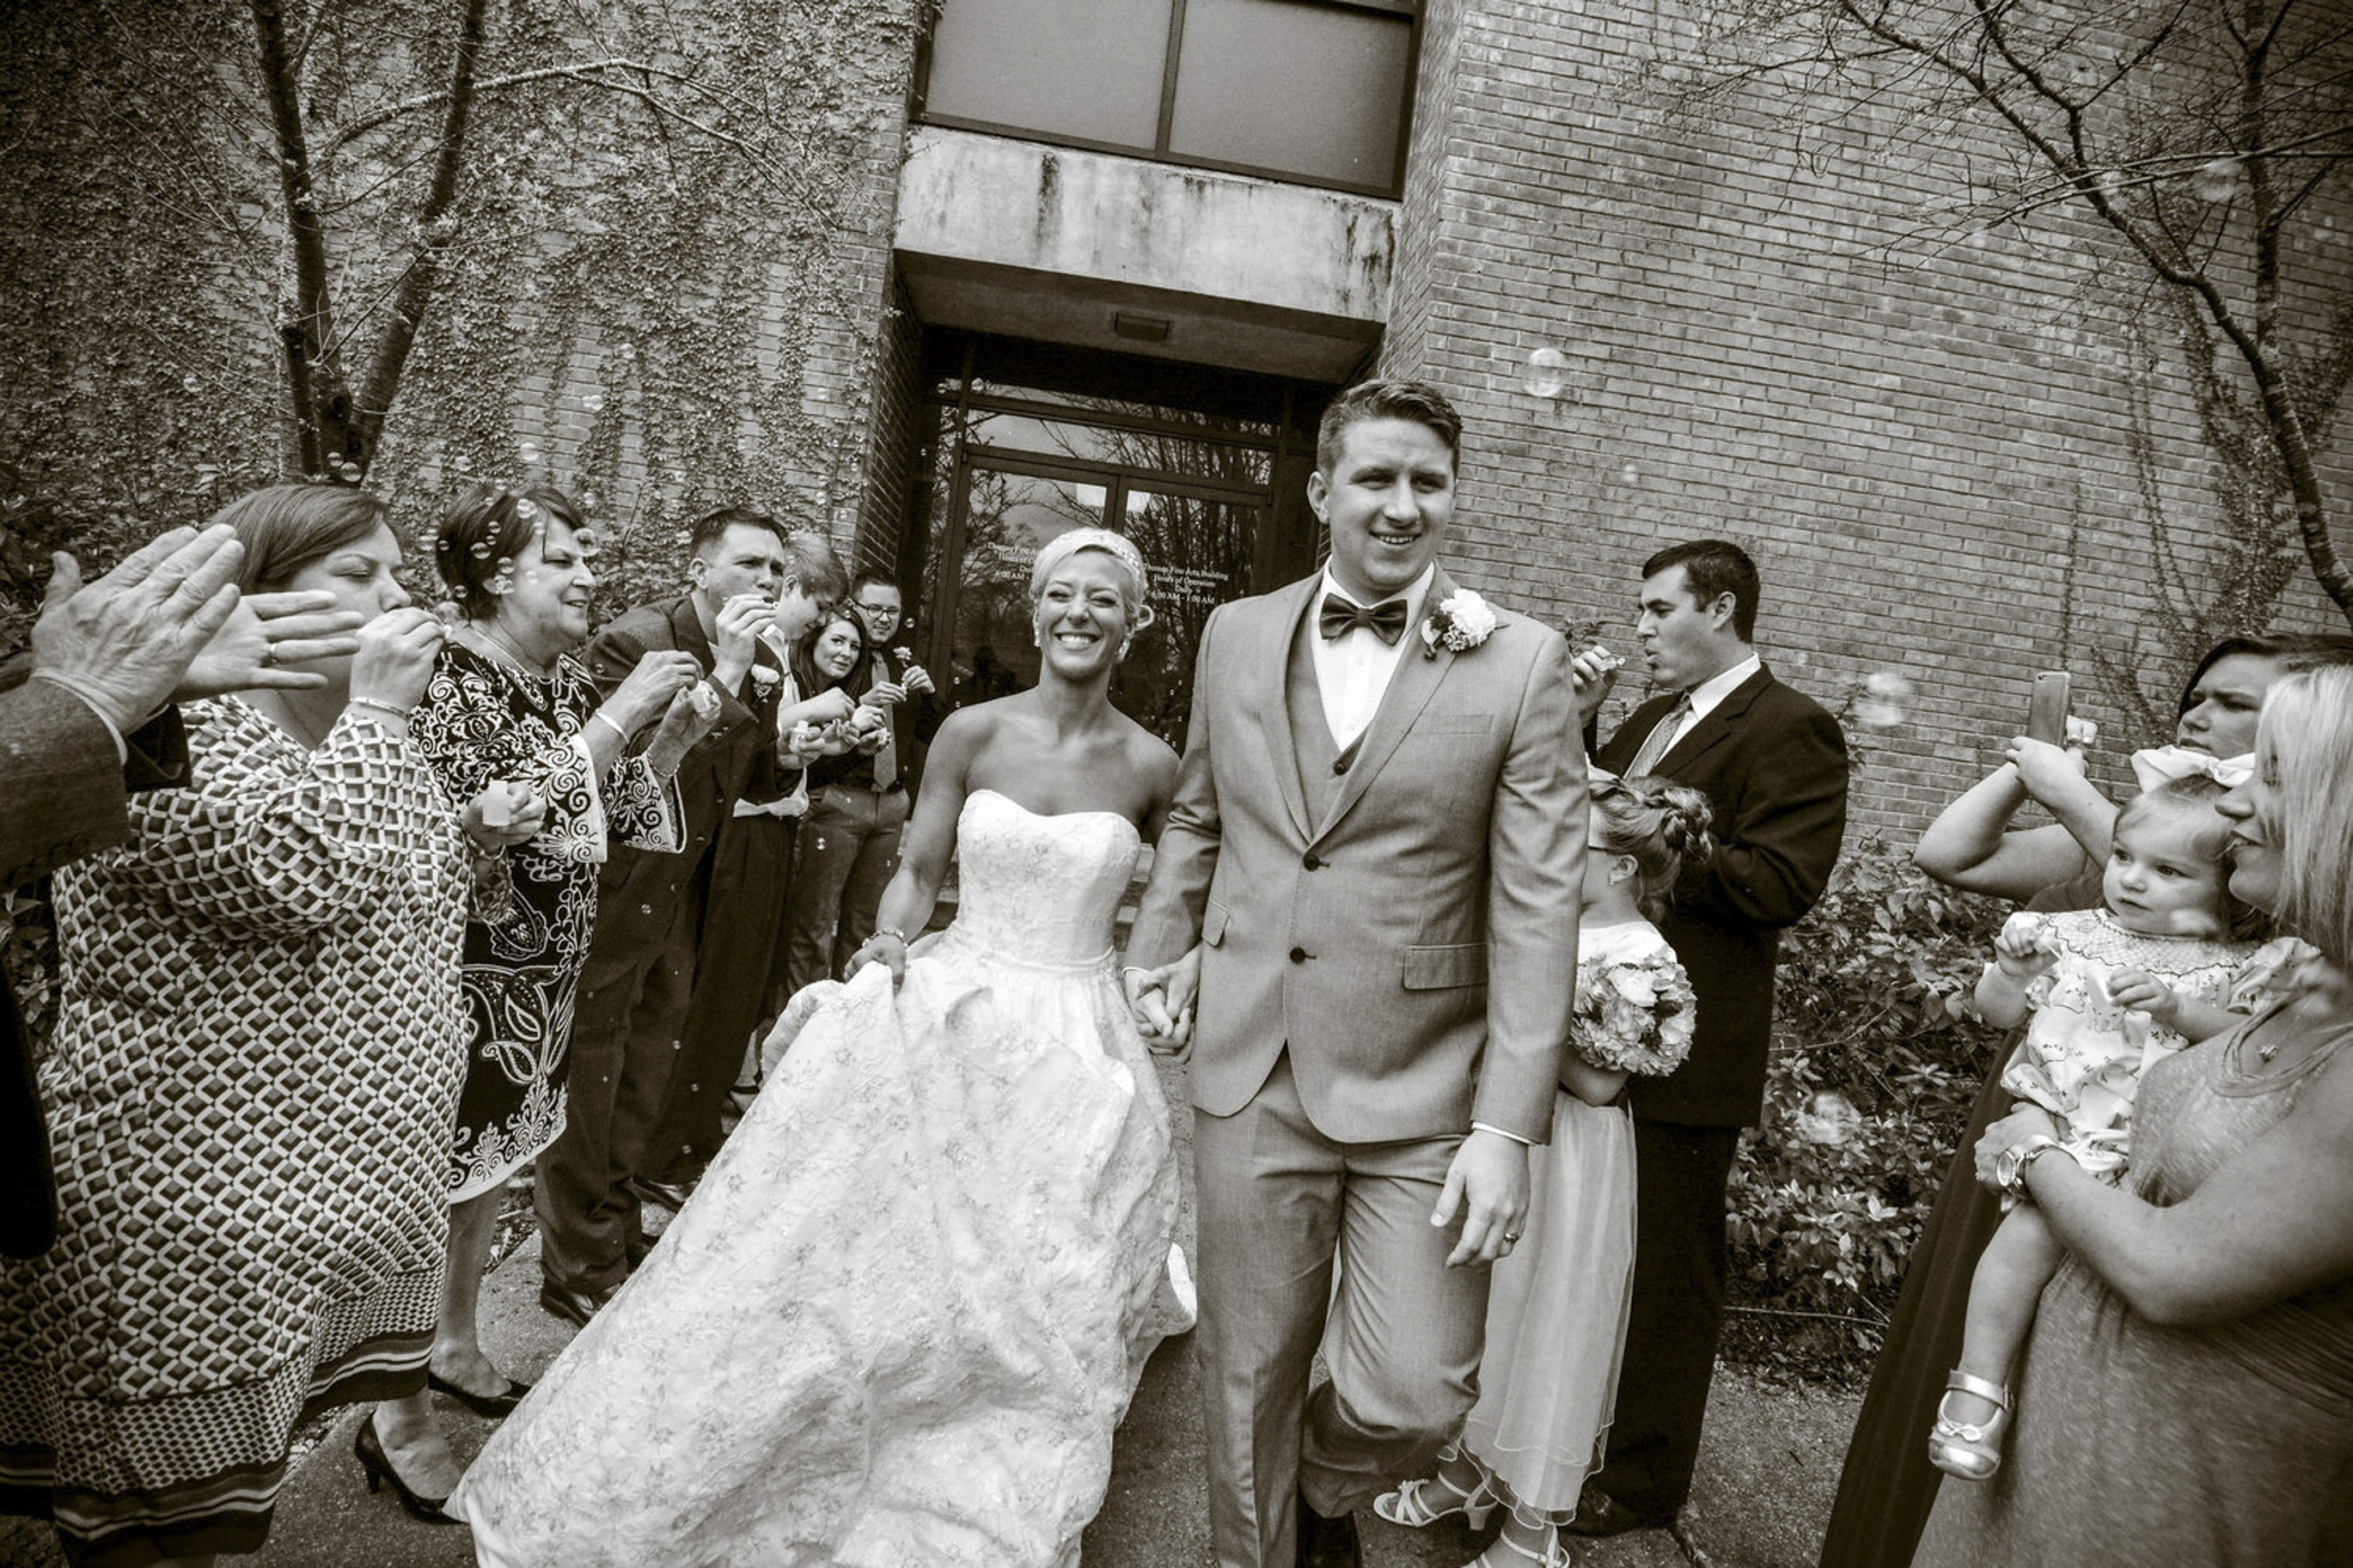 View More: http://mattbushphotography.pass.us/lee-and-brocks-wedding-at-william-carey-university-in-hattiesburg-mississippi